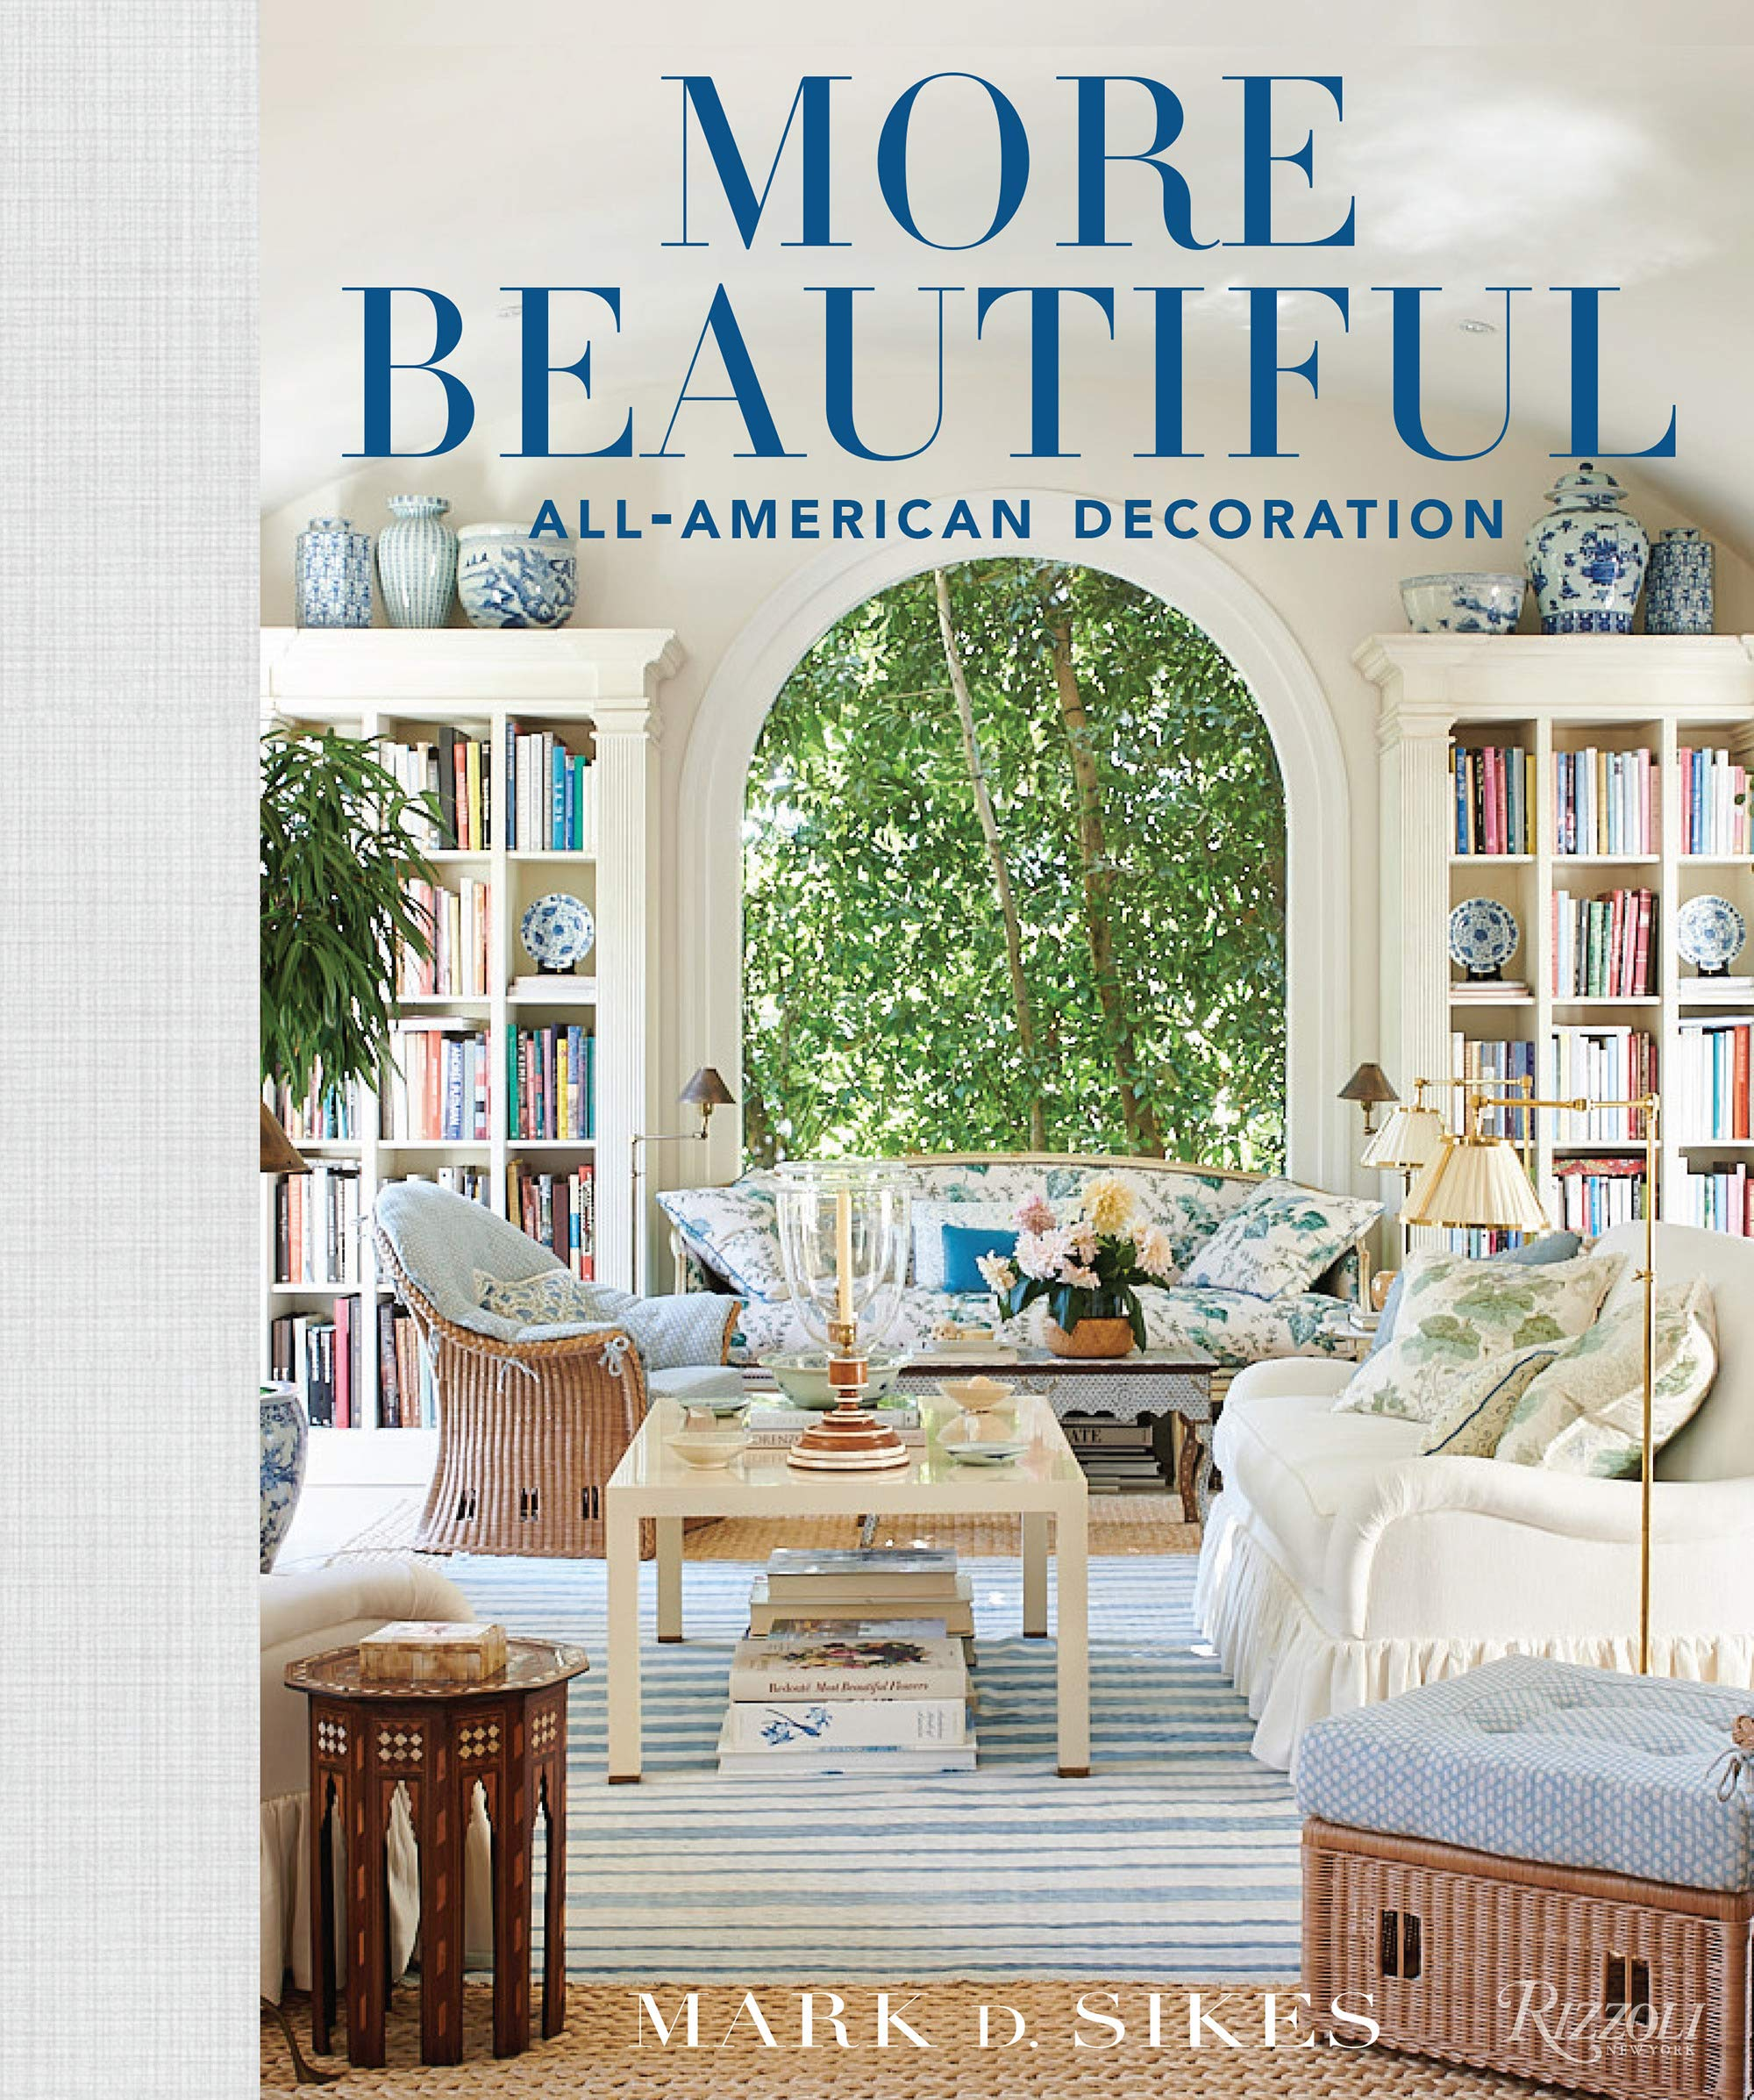 Book - More Beautiful, All American Decoration